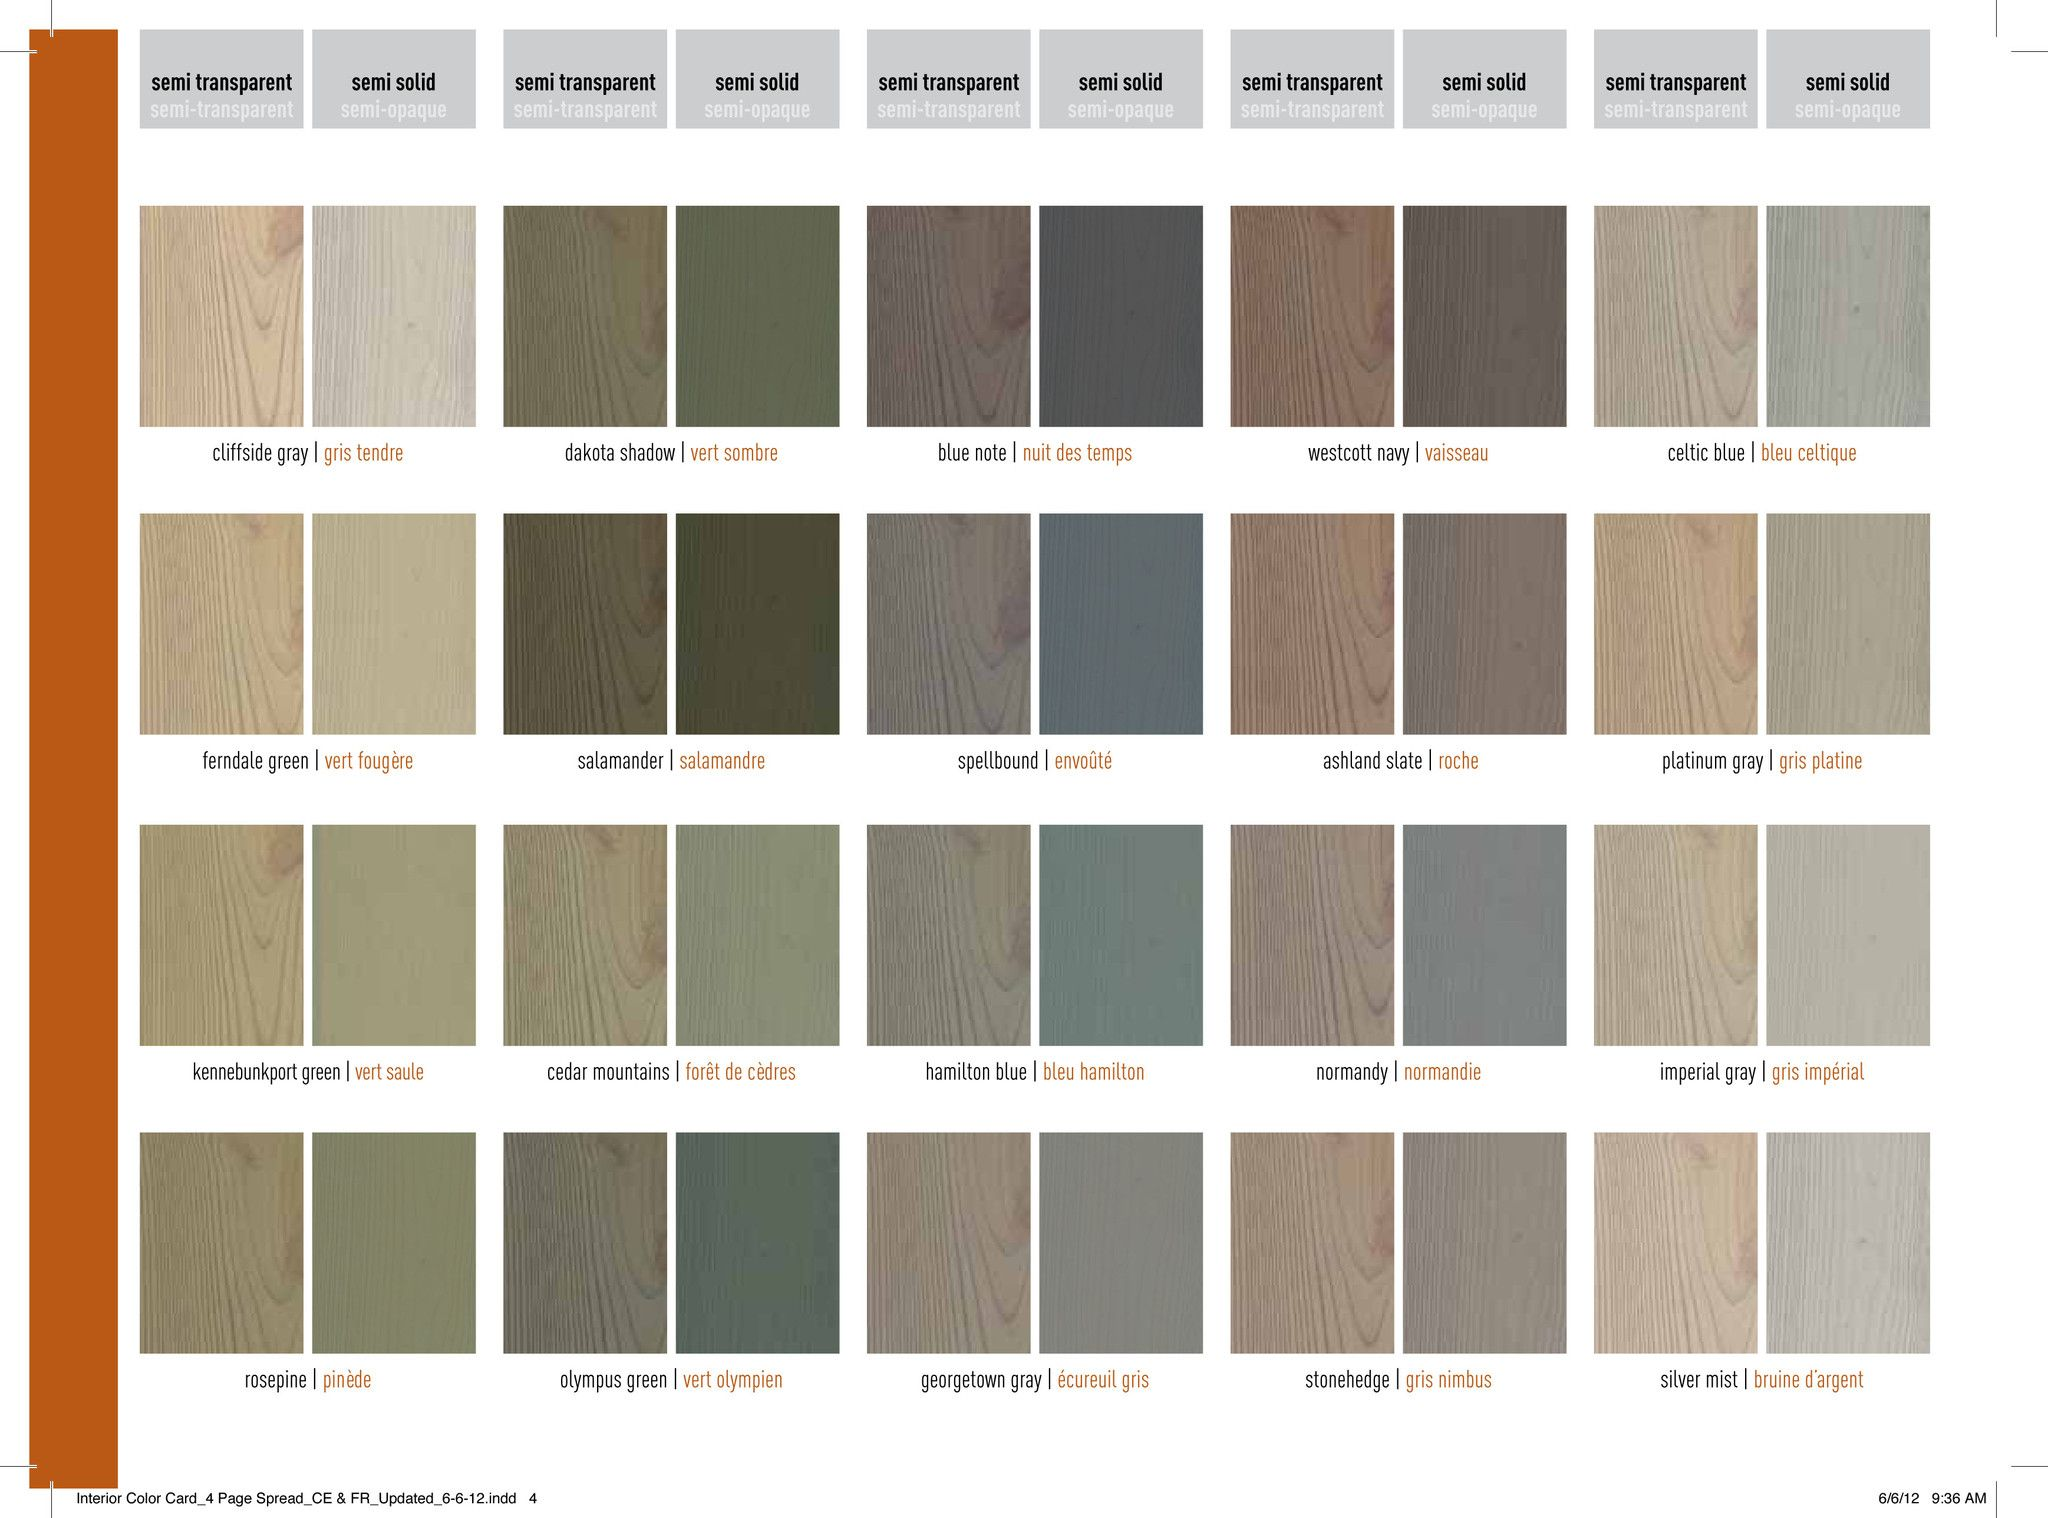 Benjamin moore arborcoat solid stain colors by onestorybuilding benjamin moore arborcoat solid stain colors by onestorybuilding via flickr there are some really nice pale blues or gray blues in there nvjuhfo Images